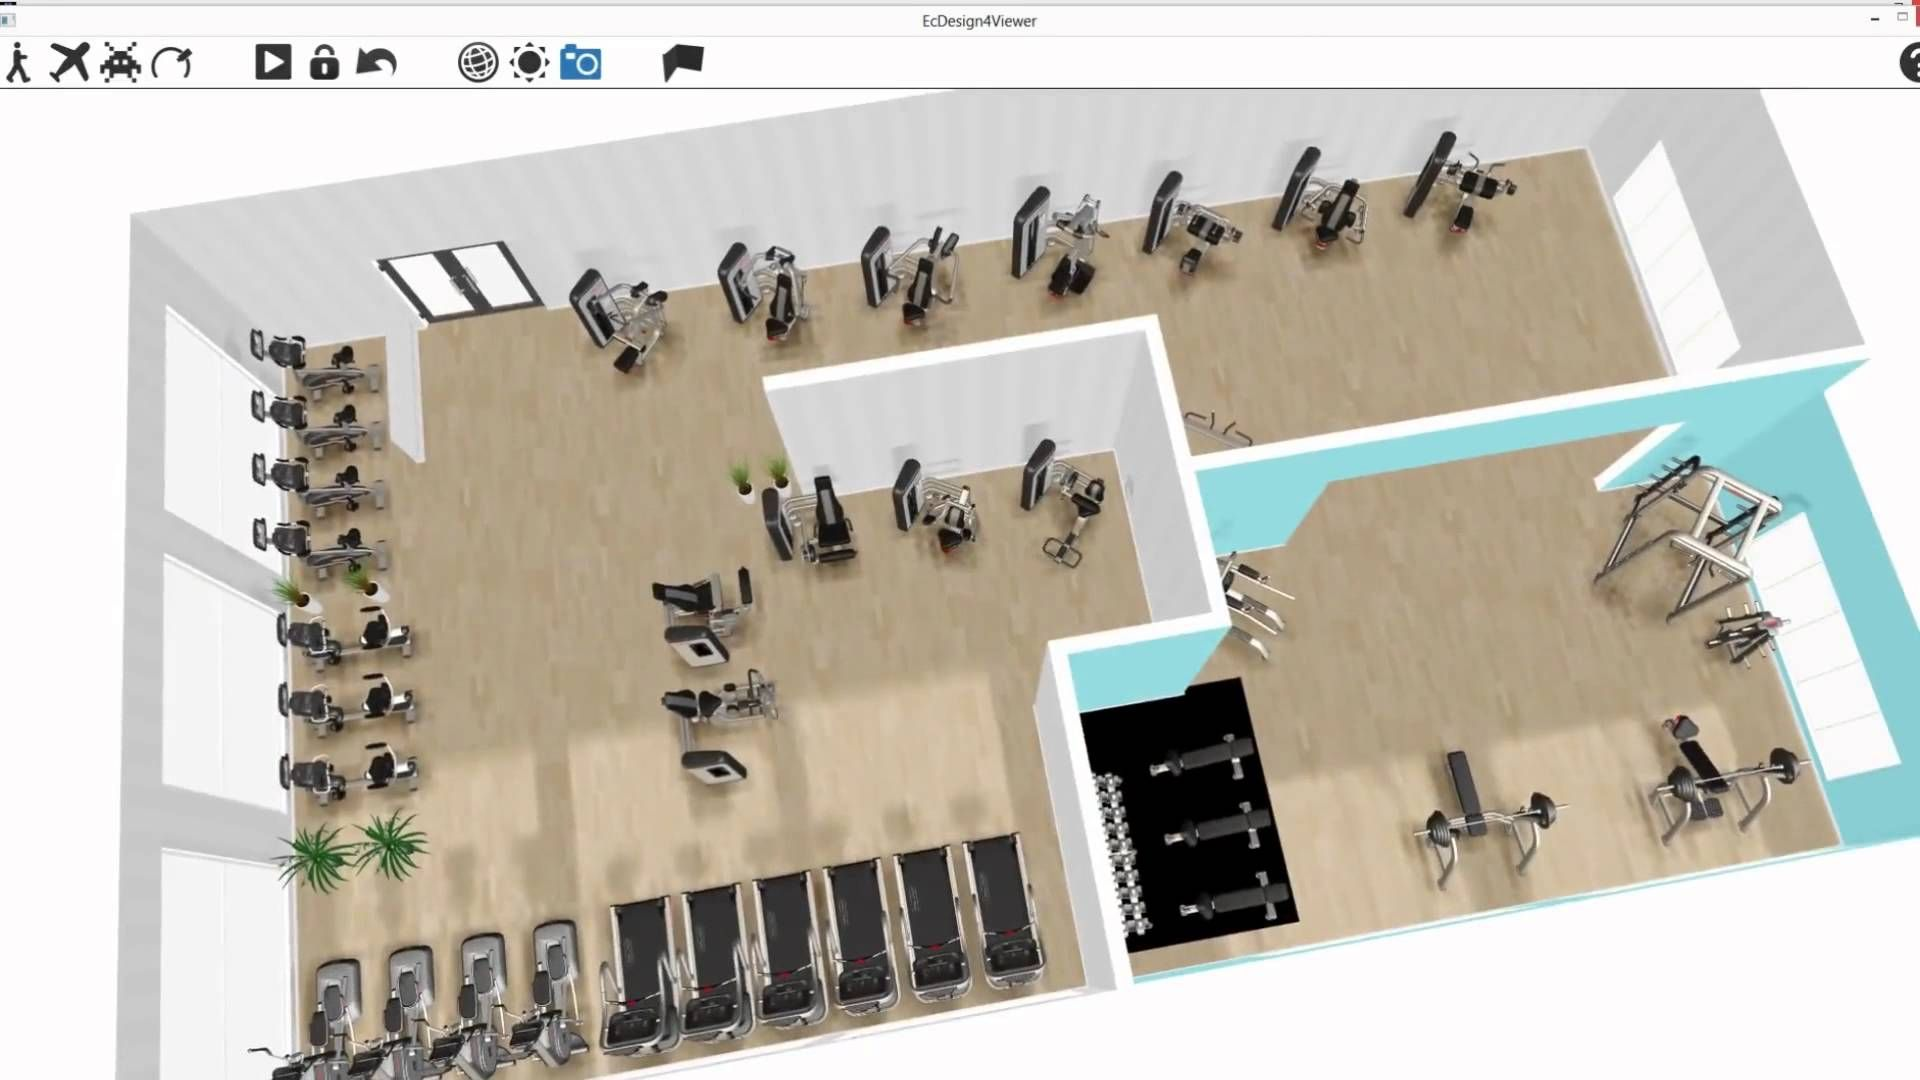 Ecdesign 3d gym design software 3d printers models for Gym design software